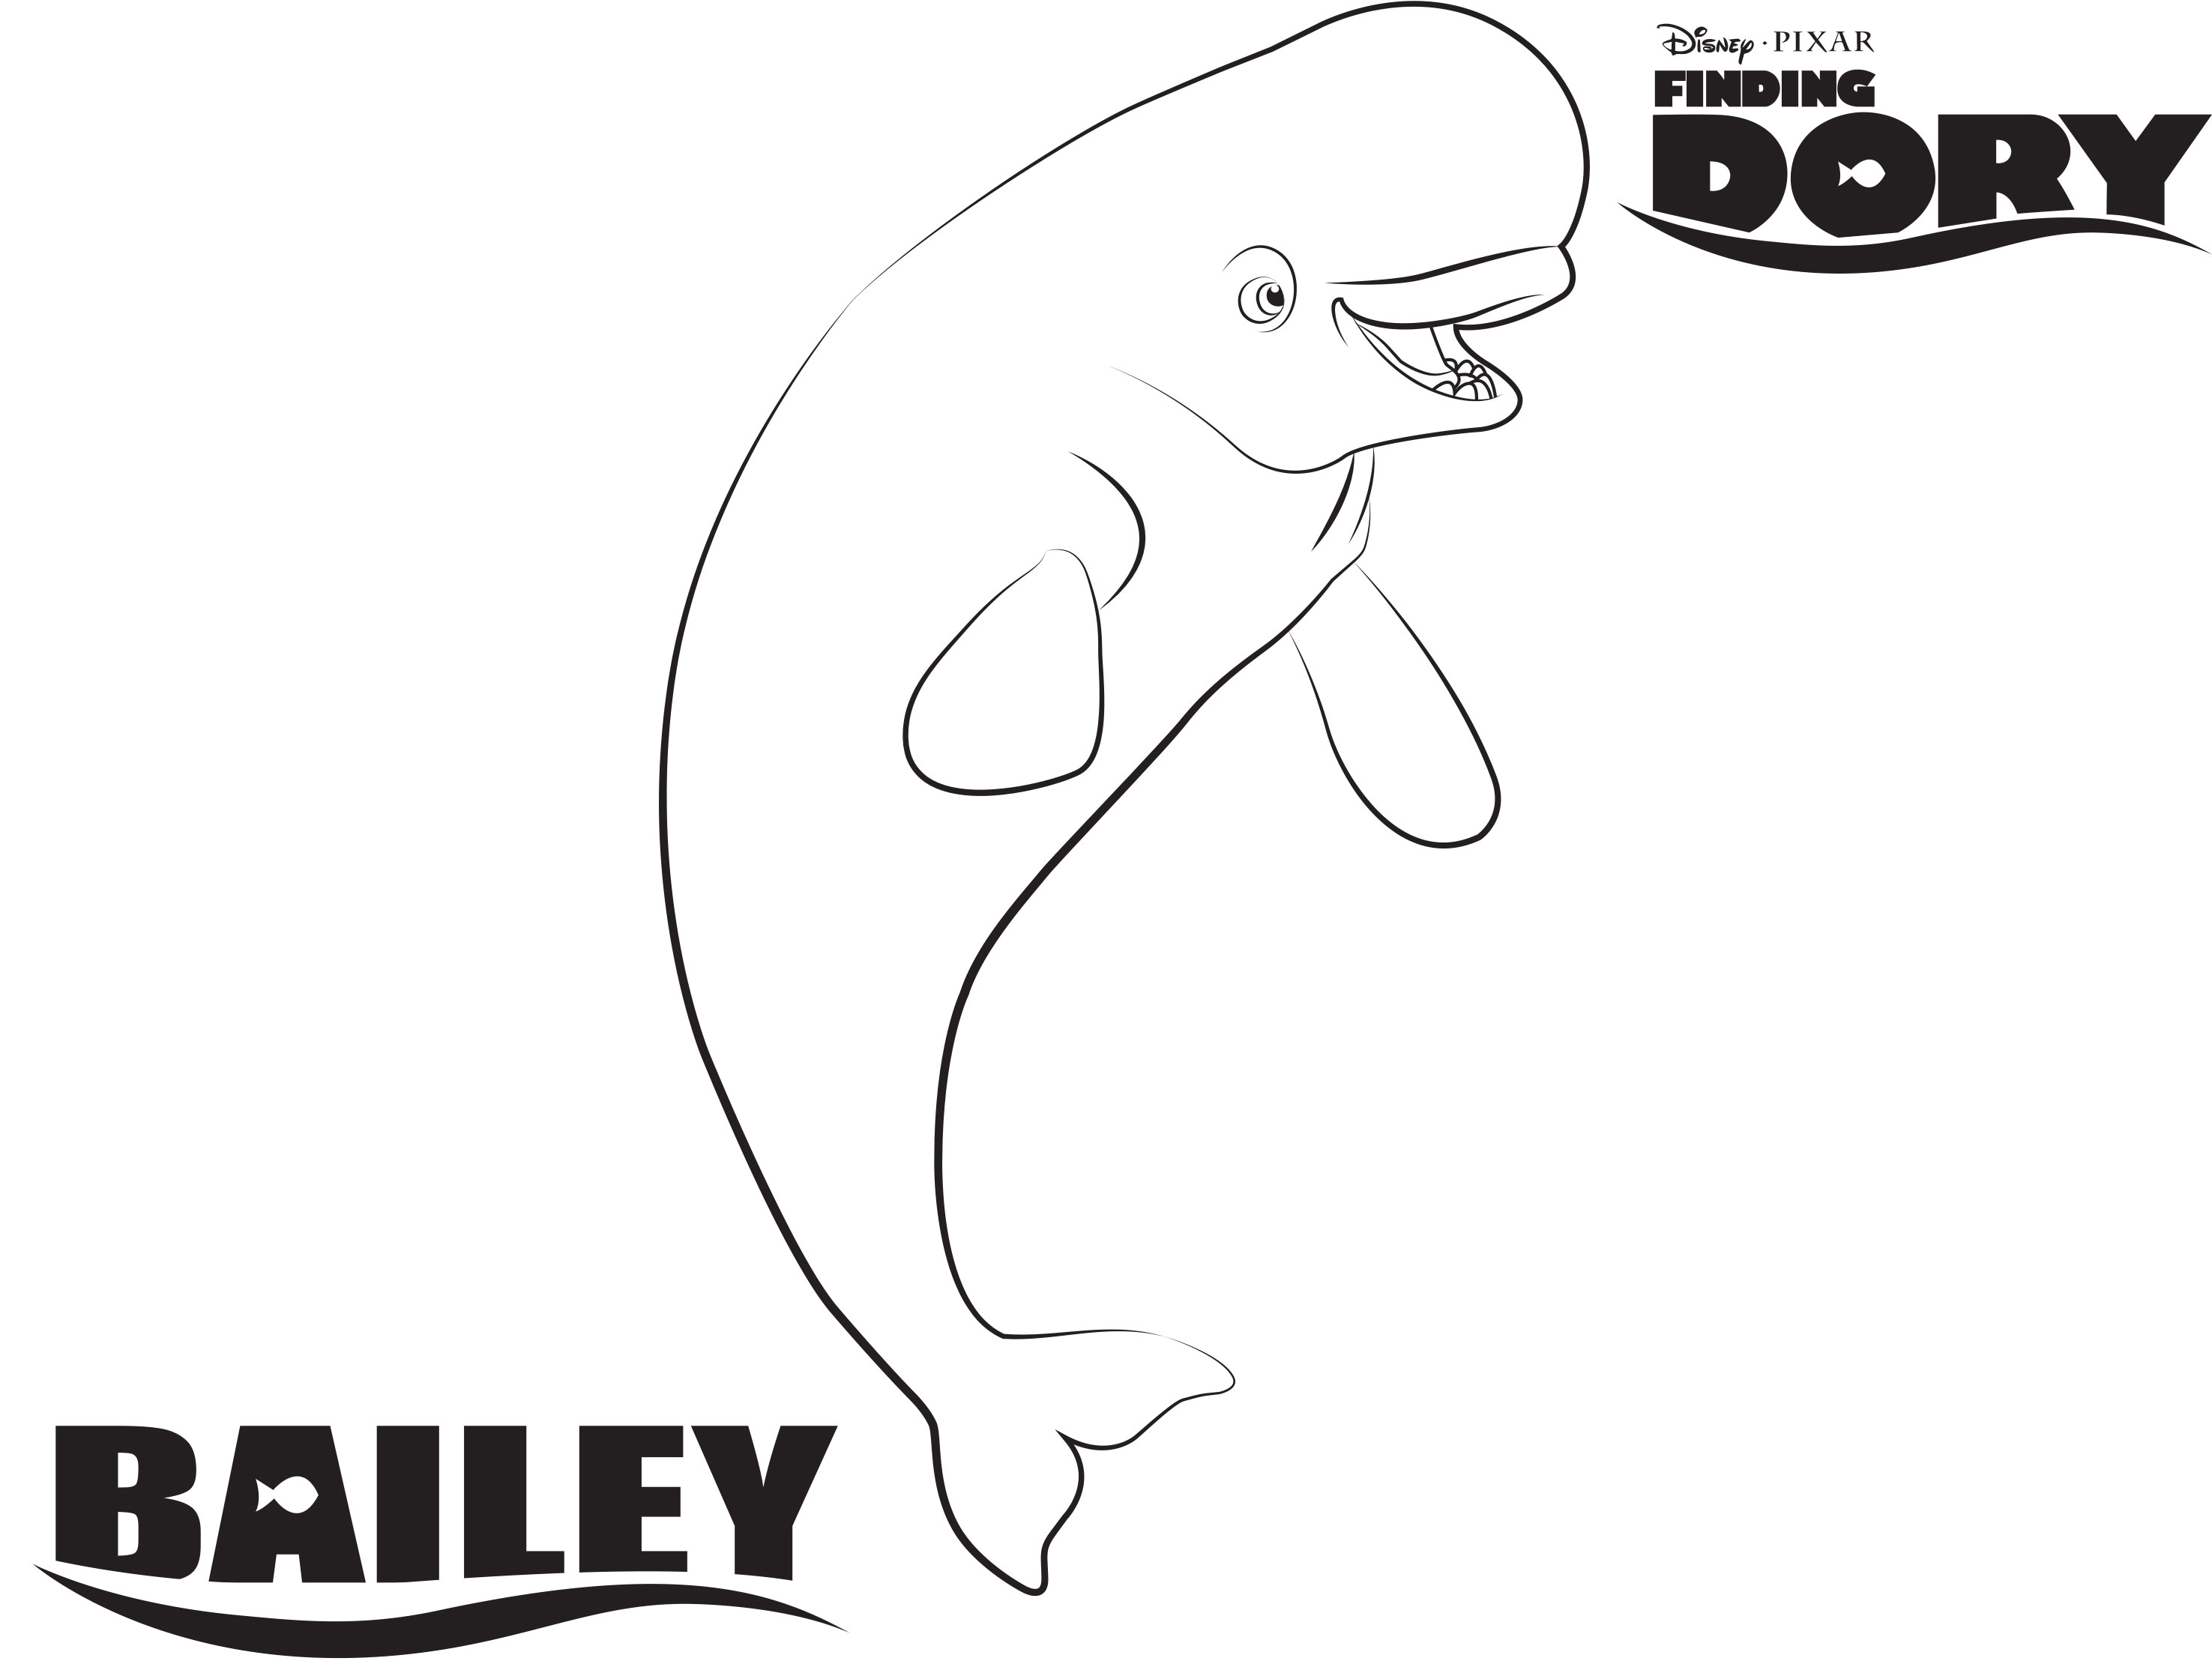 Coloring pages for dory - Bailey Finding Dory Coloring Page